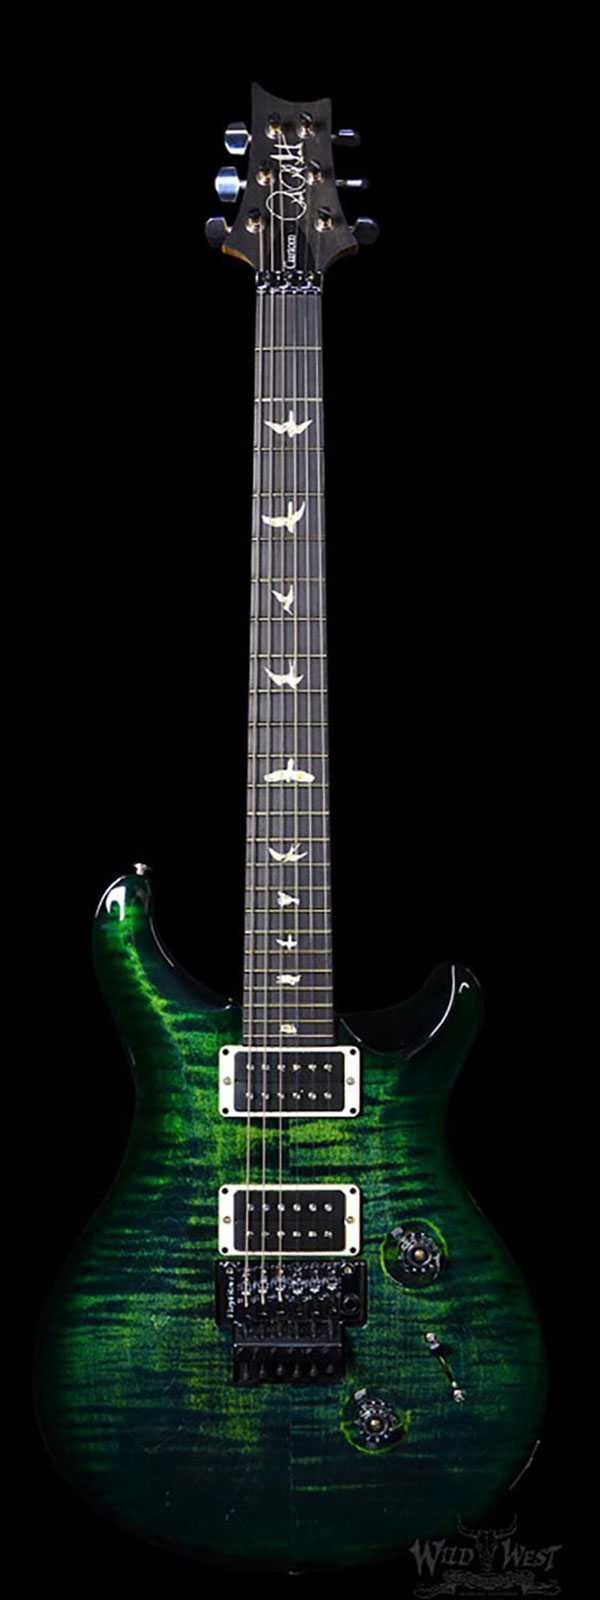 prs se custom 24 wiring diagram with Paul Reed Smith Wiring on Prs Pickup Wiring Diagram additionally B A Cat 5 Wire Diagram further Cts Push Pull Pots Dpdt Wiring Diagrams furthermore Prs 24 Se Wiring Diagram Free Download furthermore Prs 24 Se Wiring Diagram Free Download.